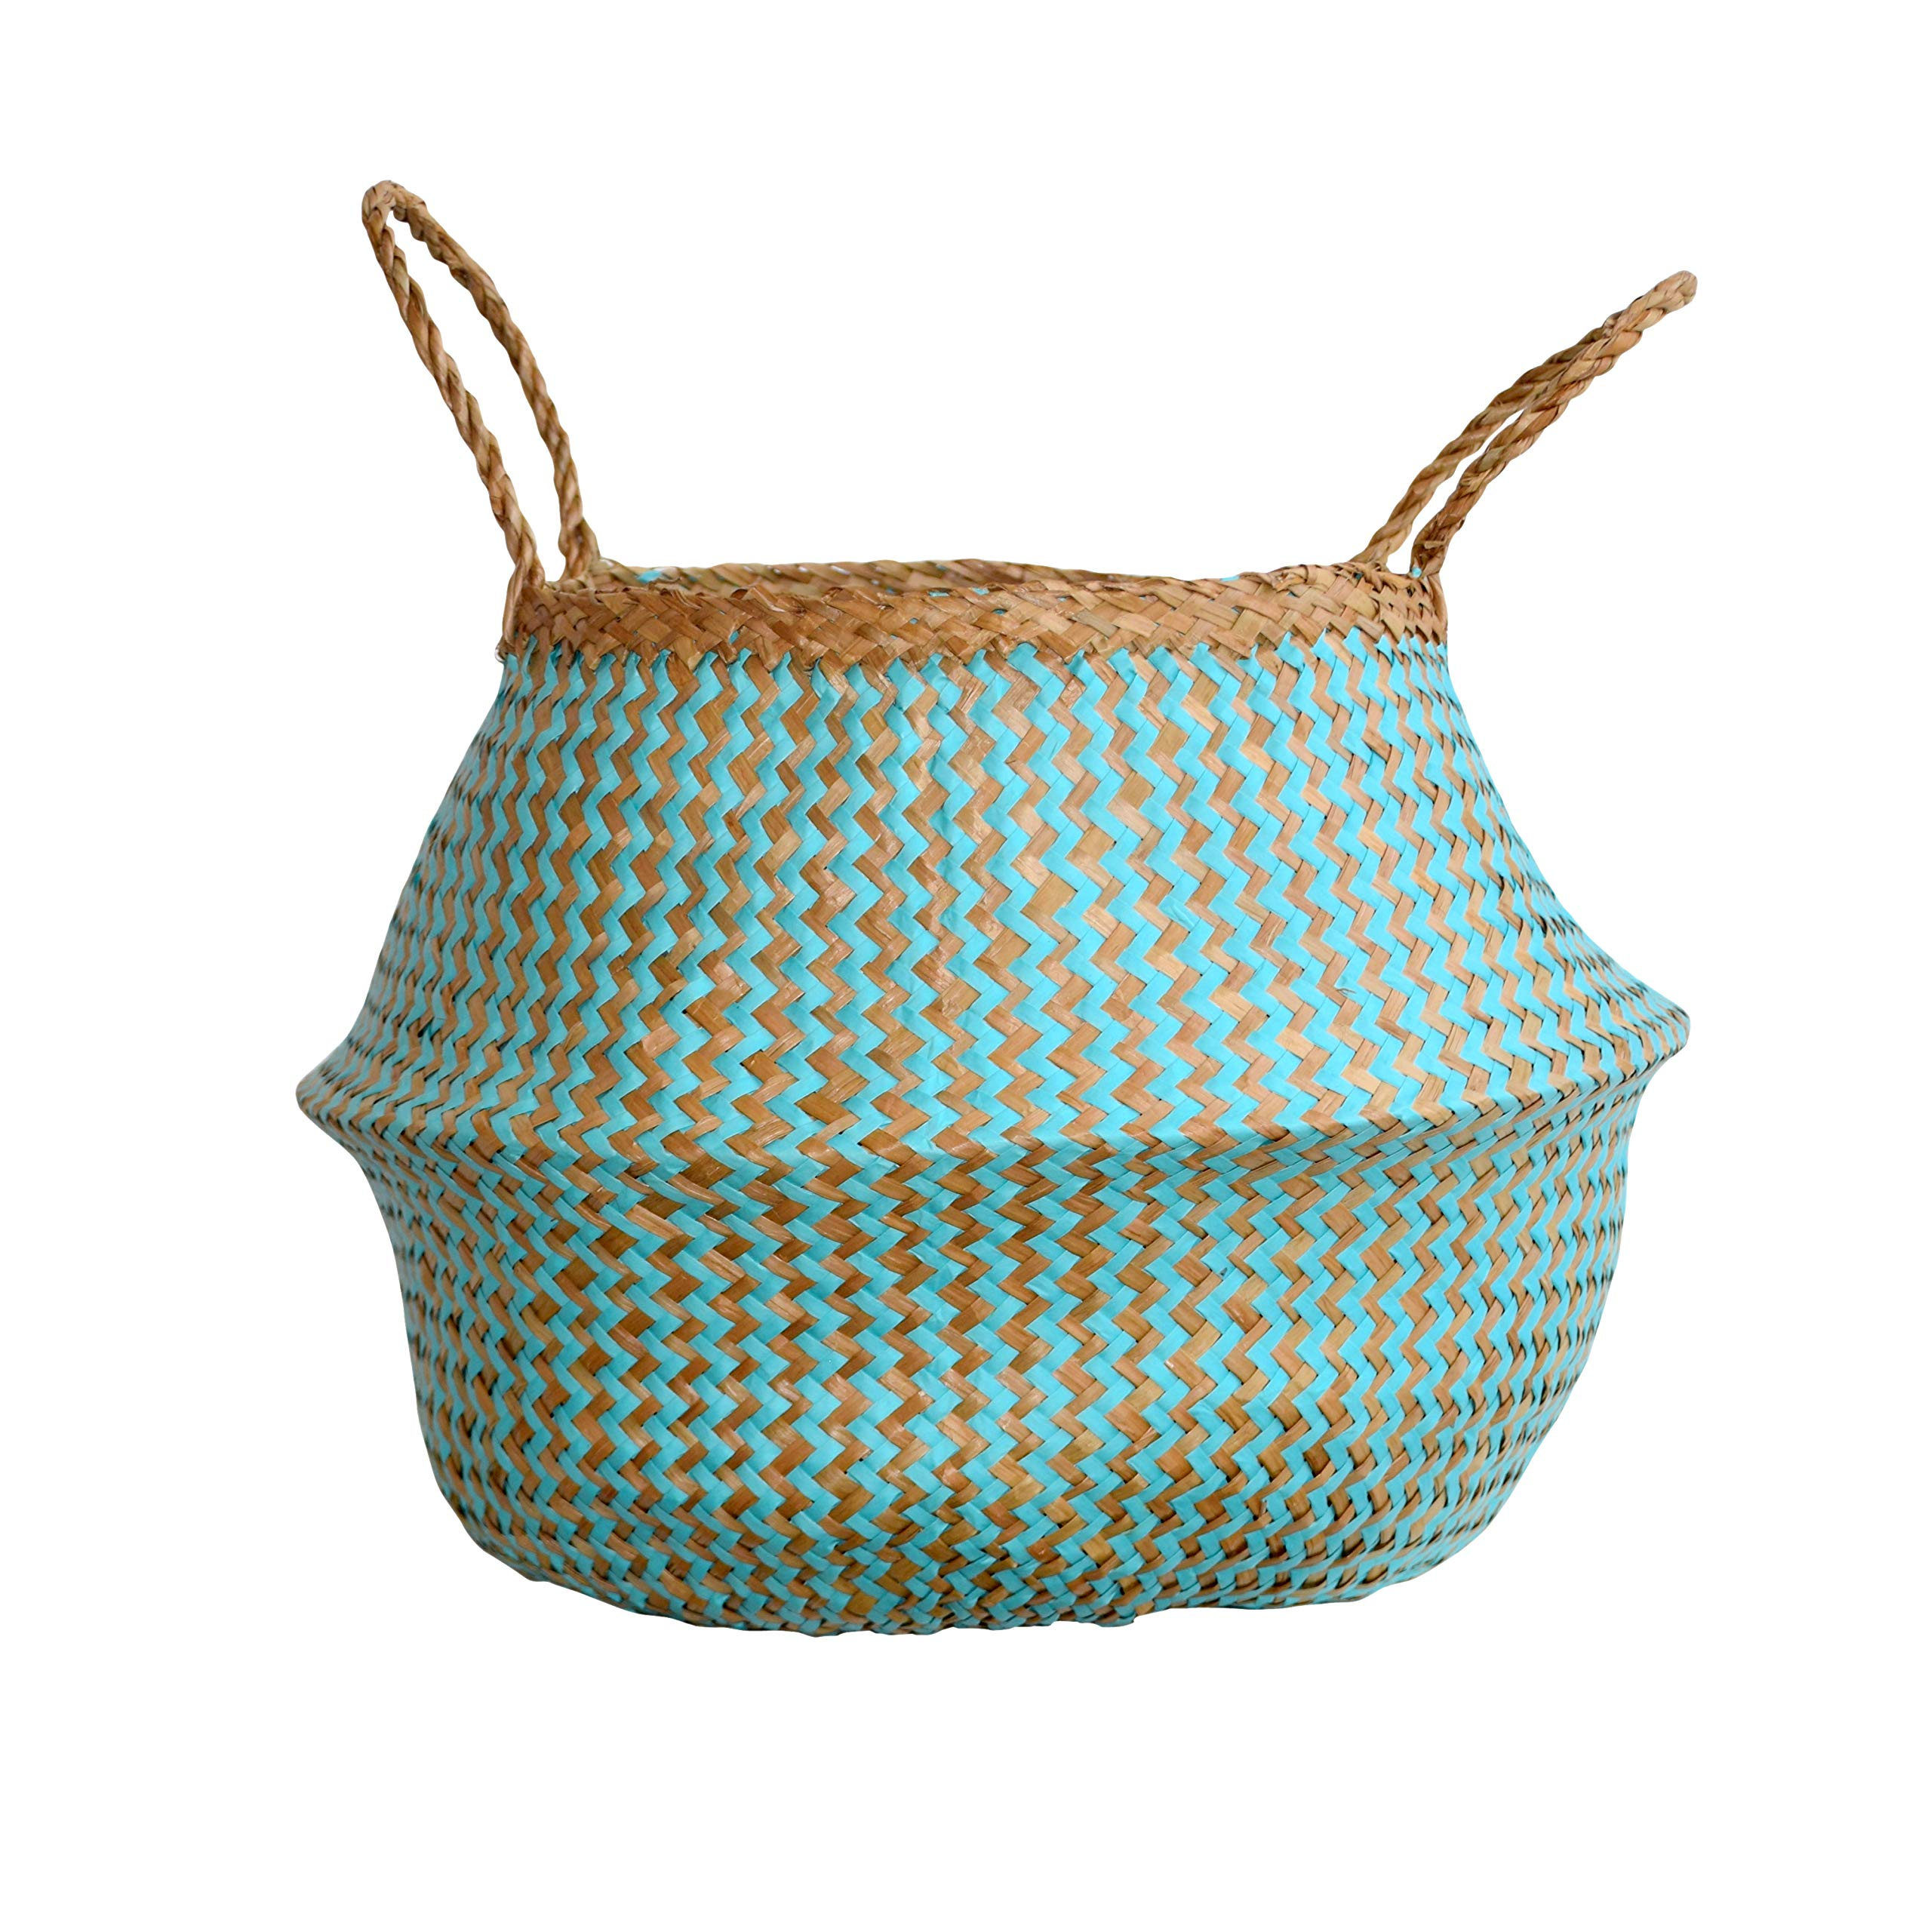 DUFMOD Small Natural and Plush Woven Seagrass Tote Belly Basket for Storage, Laundry, Picnic, Plant Pot Cover, and Beach Bag (Plush Zigzag Chevron Seagrass Aquamarine, Small)